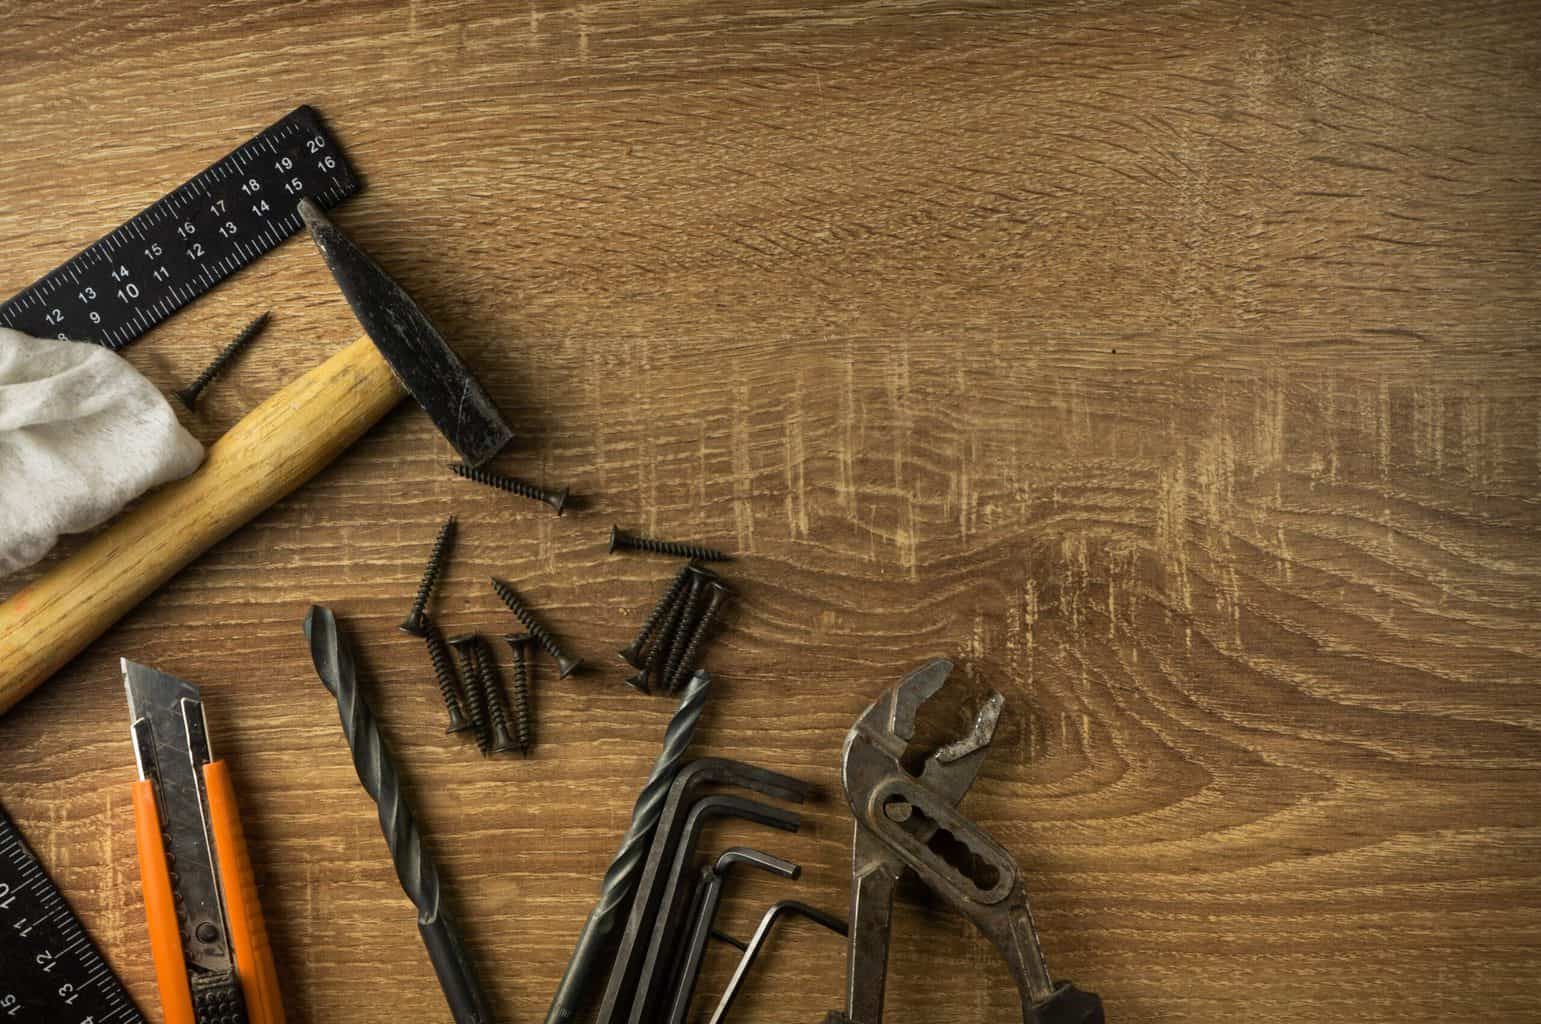 Some hand tools on the table